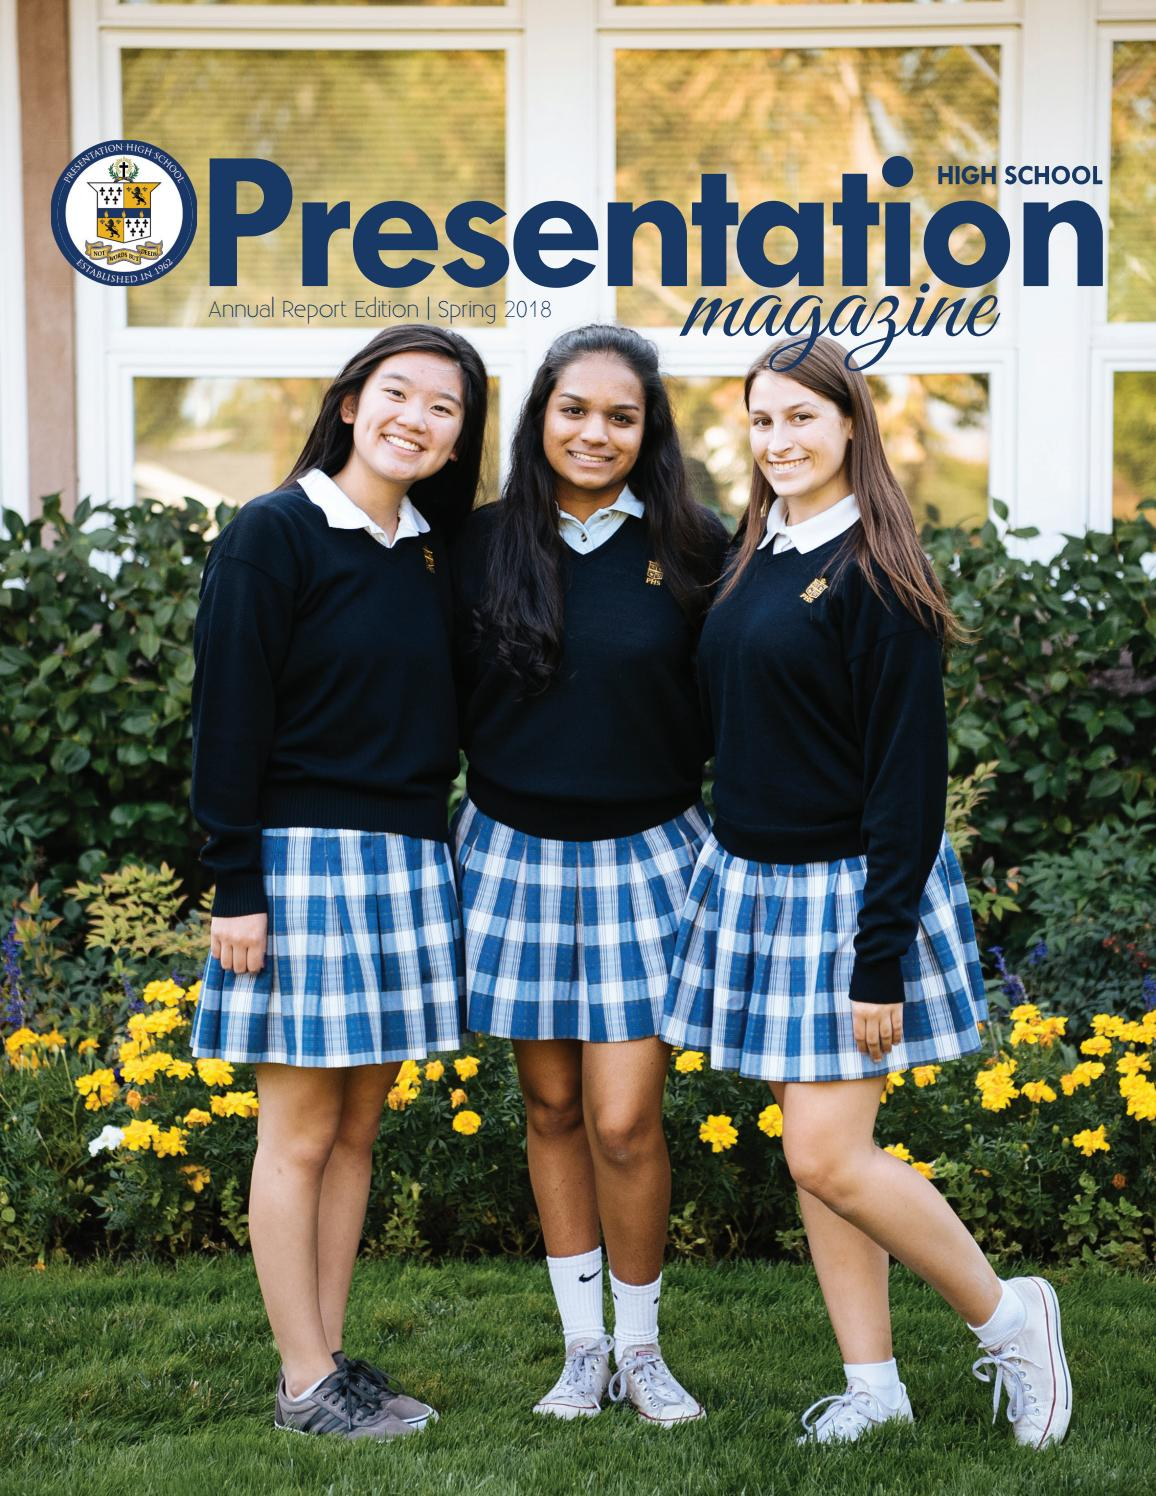 Presentation High School Magazine - Spring 2018 by Presentation High School  - issuu